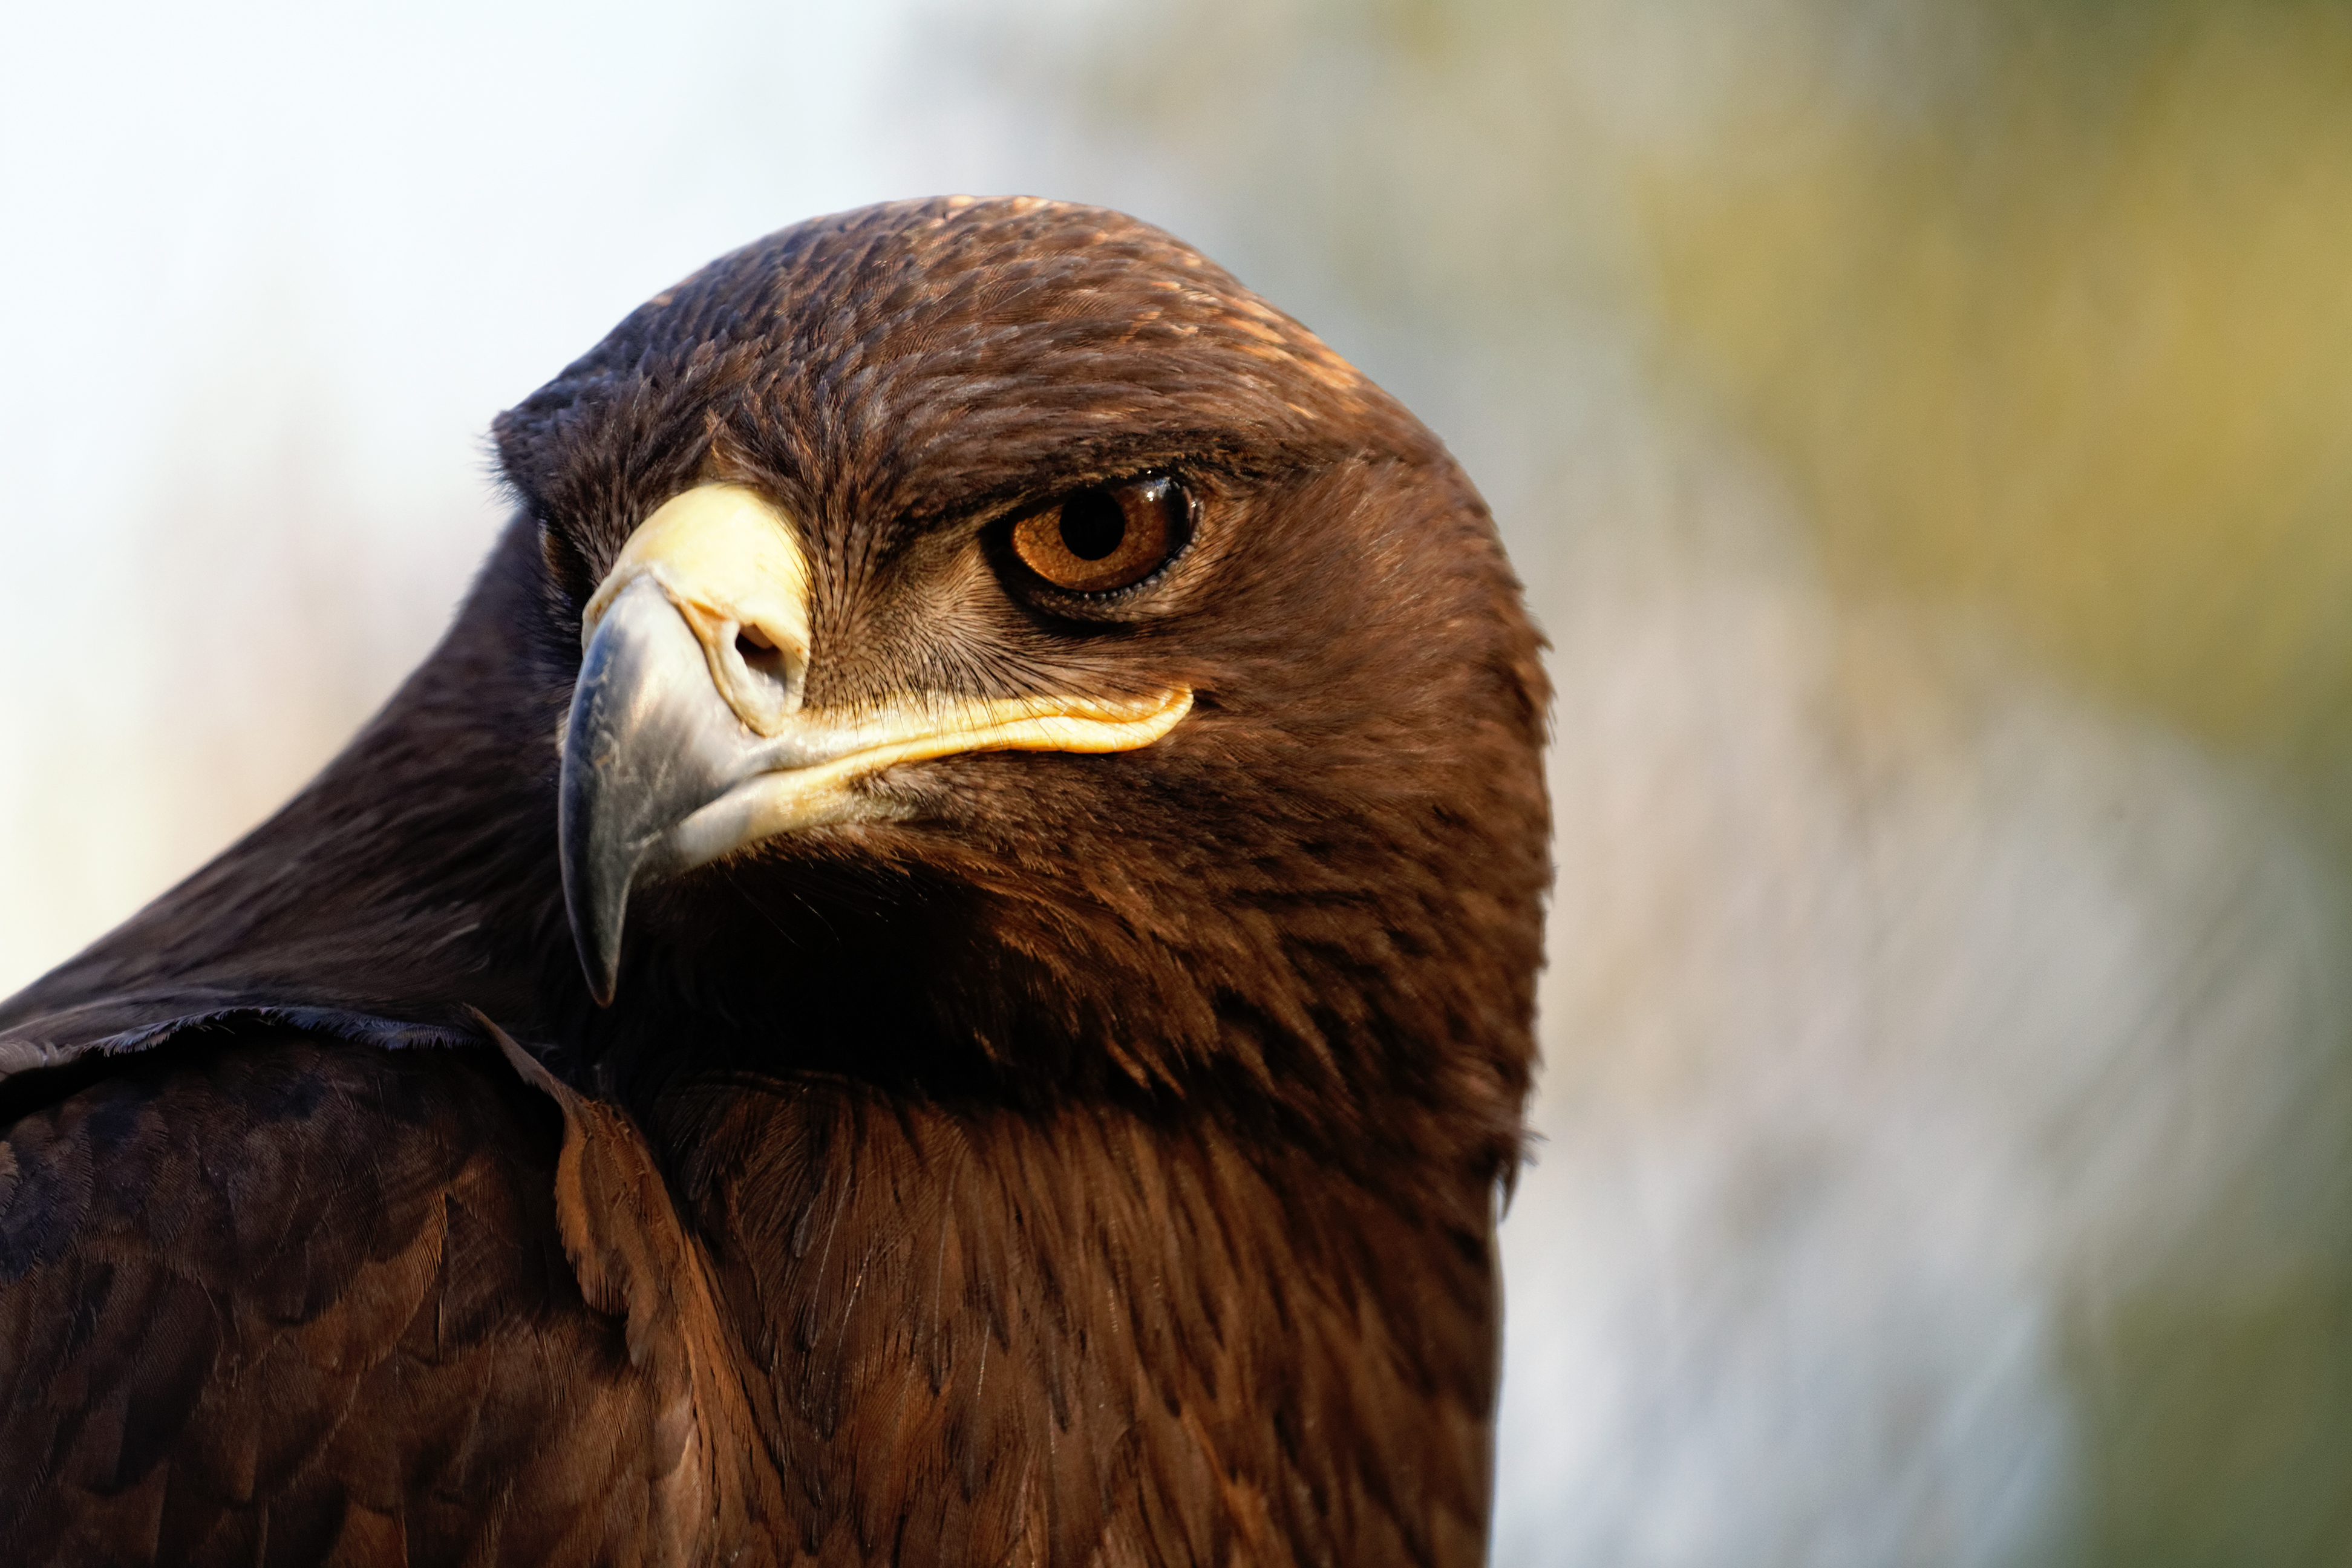 The Steppe Eagle is a bird of prey